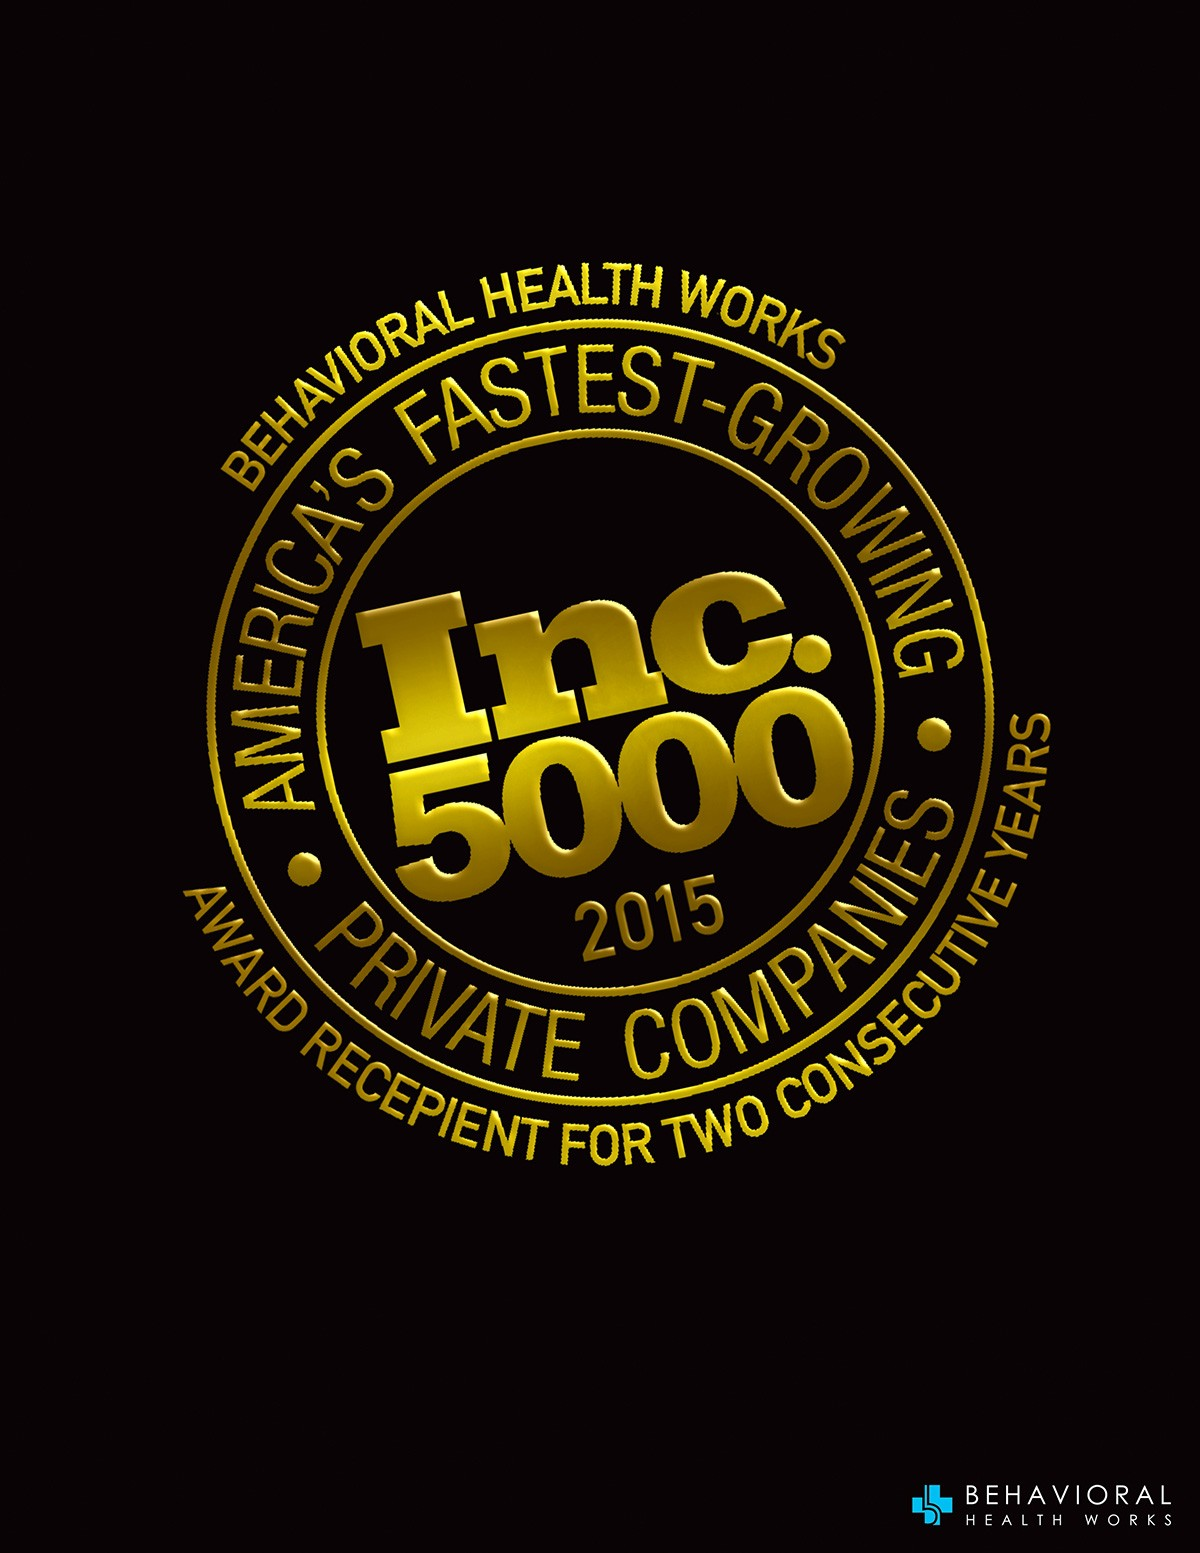 BHW MARKETING Inc5000 2015